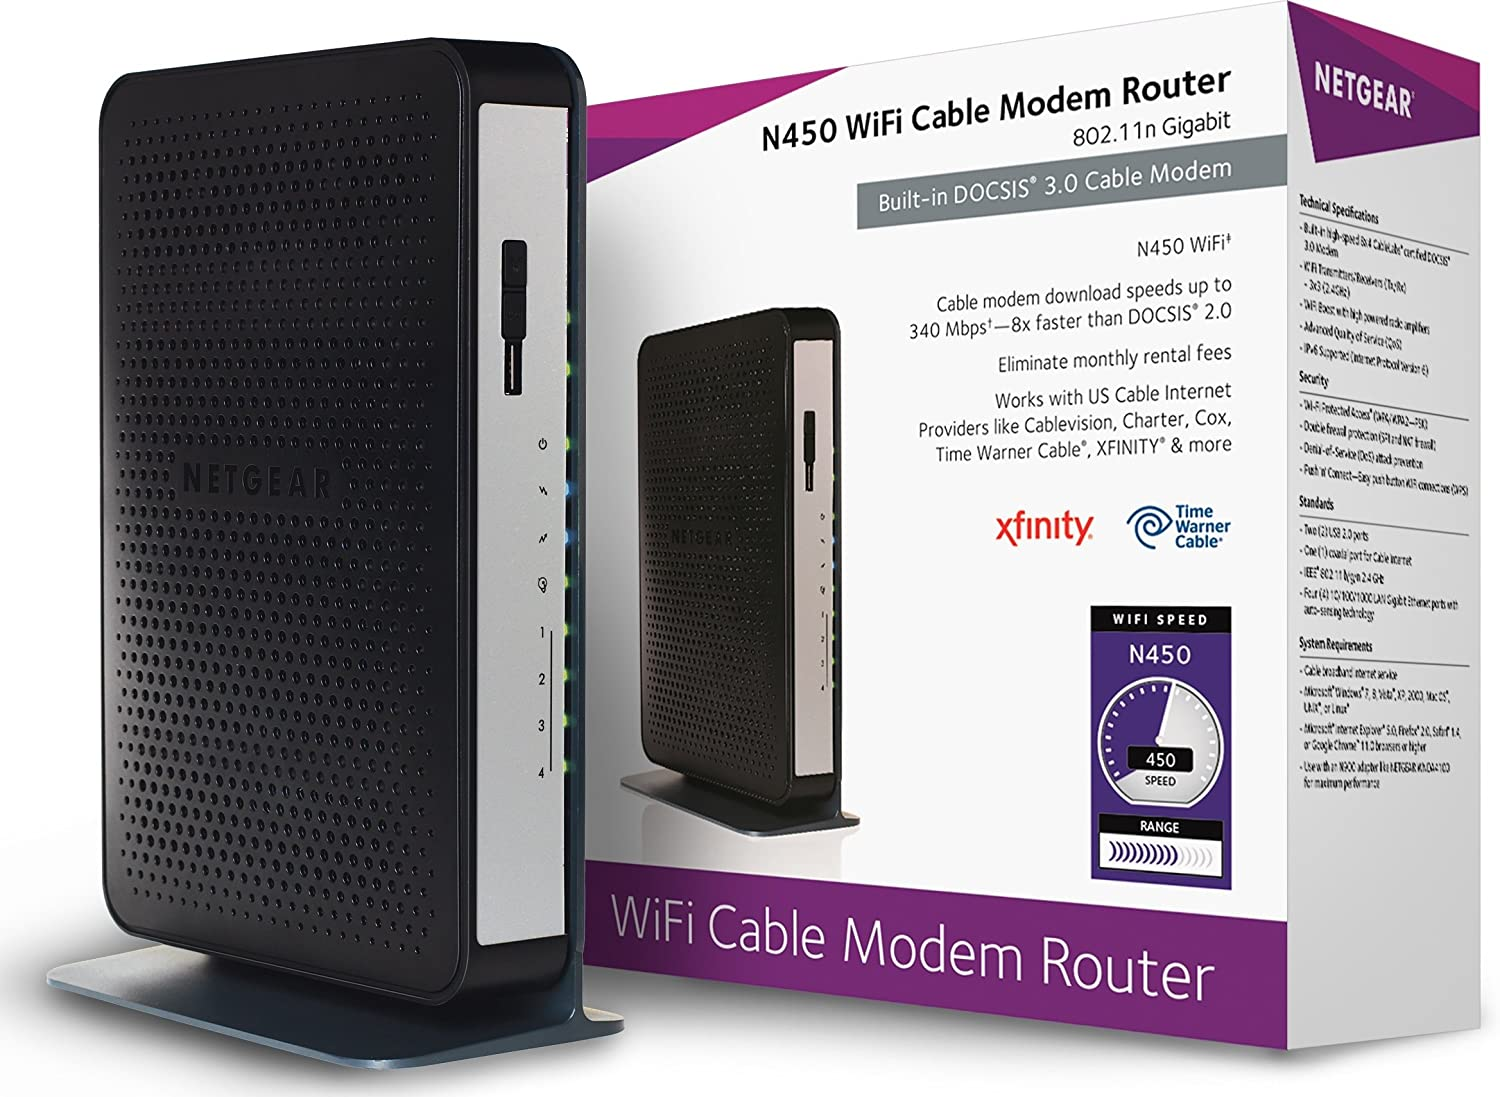 Amazon.com: NETGEAR N450 (8x4) WiFi DOCSIS 3.0 Cable Modem Router (N450)  Certified for Xfinity from Comcast, Spectrum, Cox, Cablevision & more:  Computers & ...